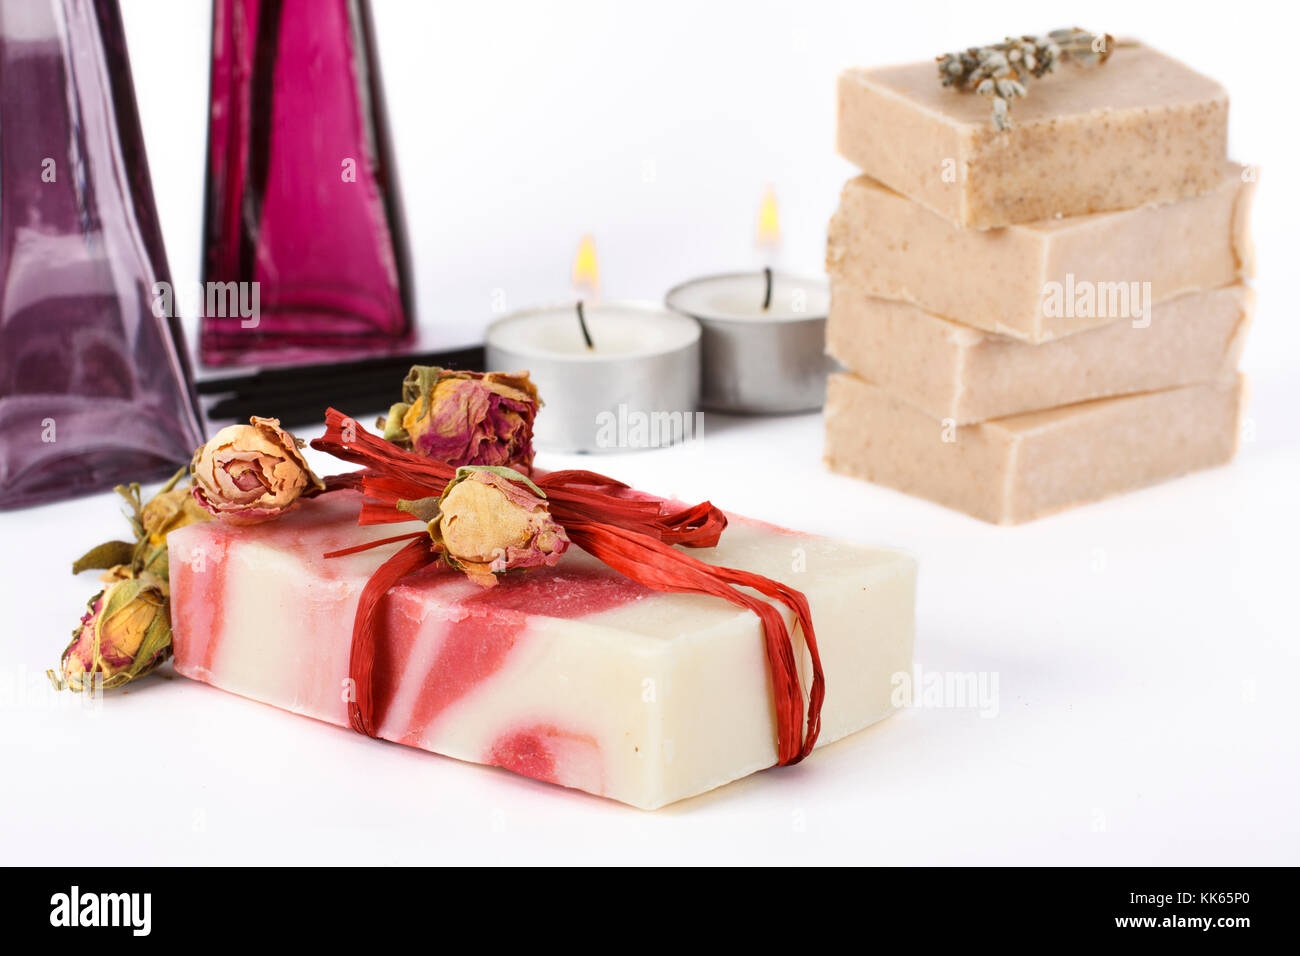 Handmade soap surrounded by natural ingredients and candle and soaps at background. - Stock Image